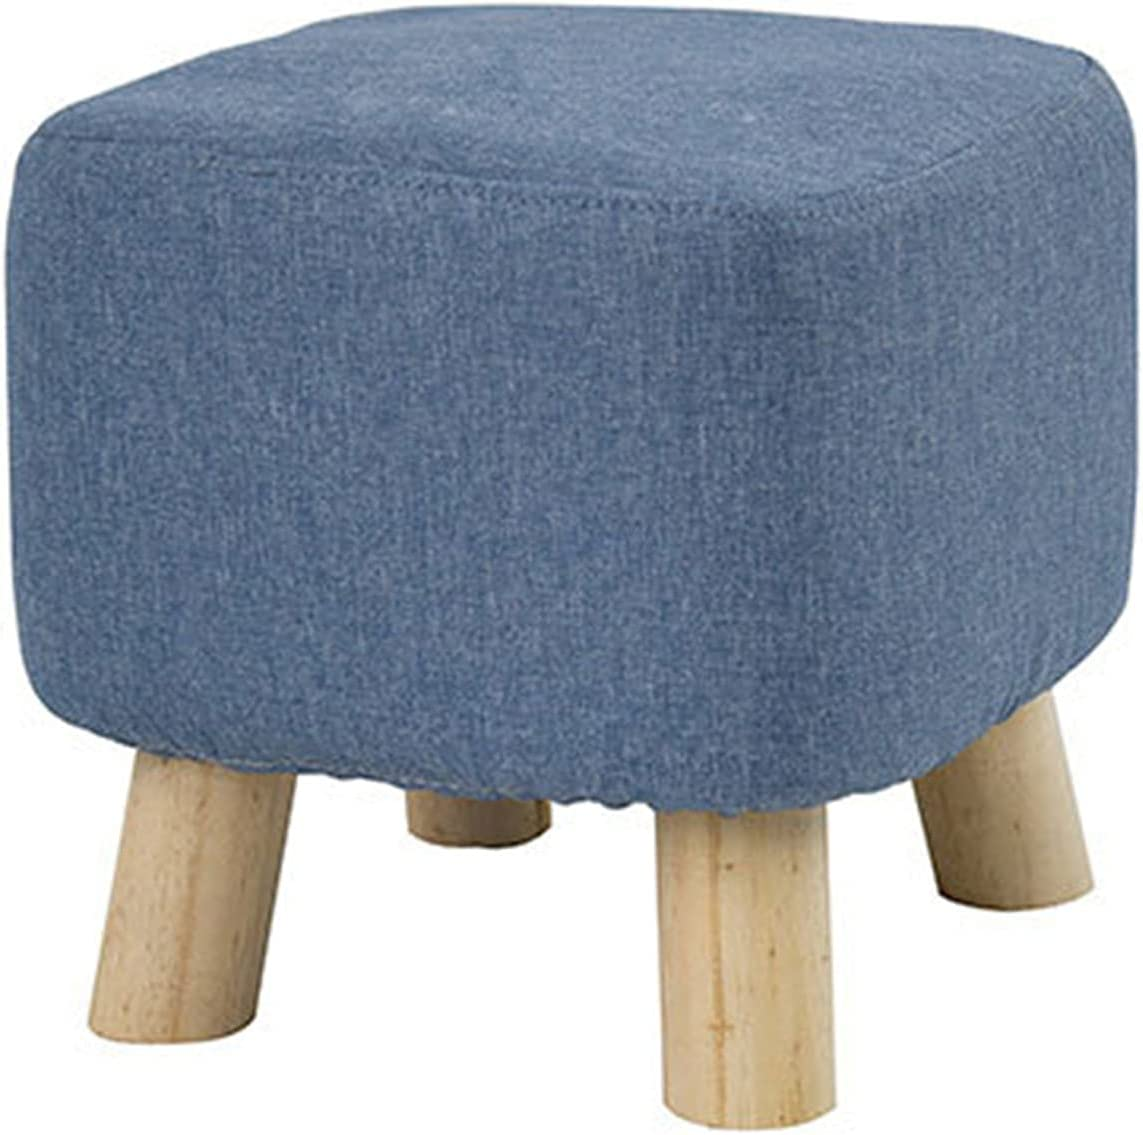 WXXSL Fabric 2021new High quality new shipping free Ottoman Removable Washable Cube Footstool Poc with